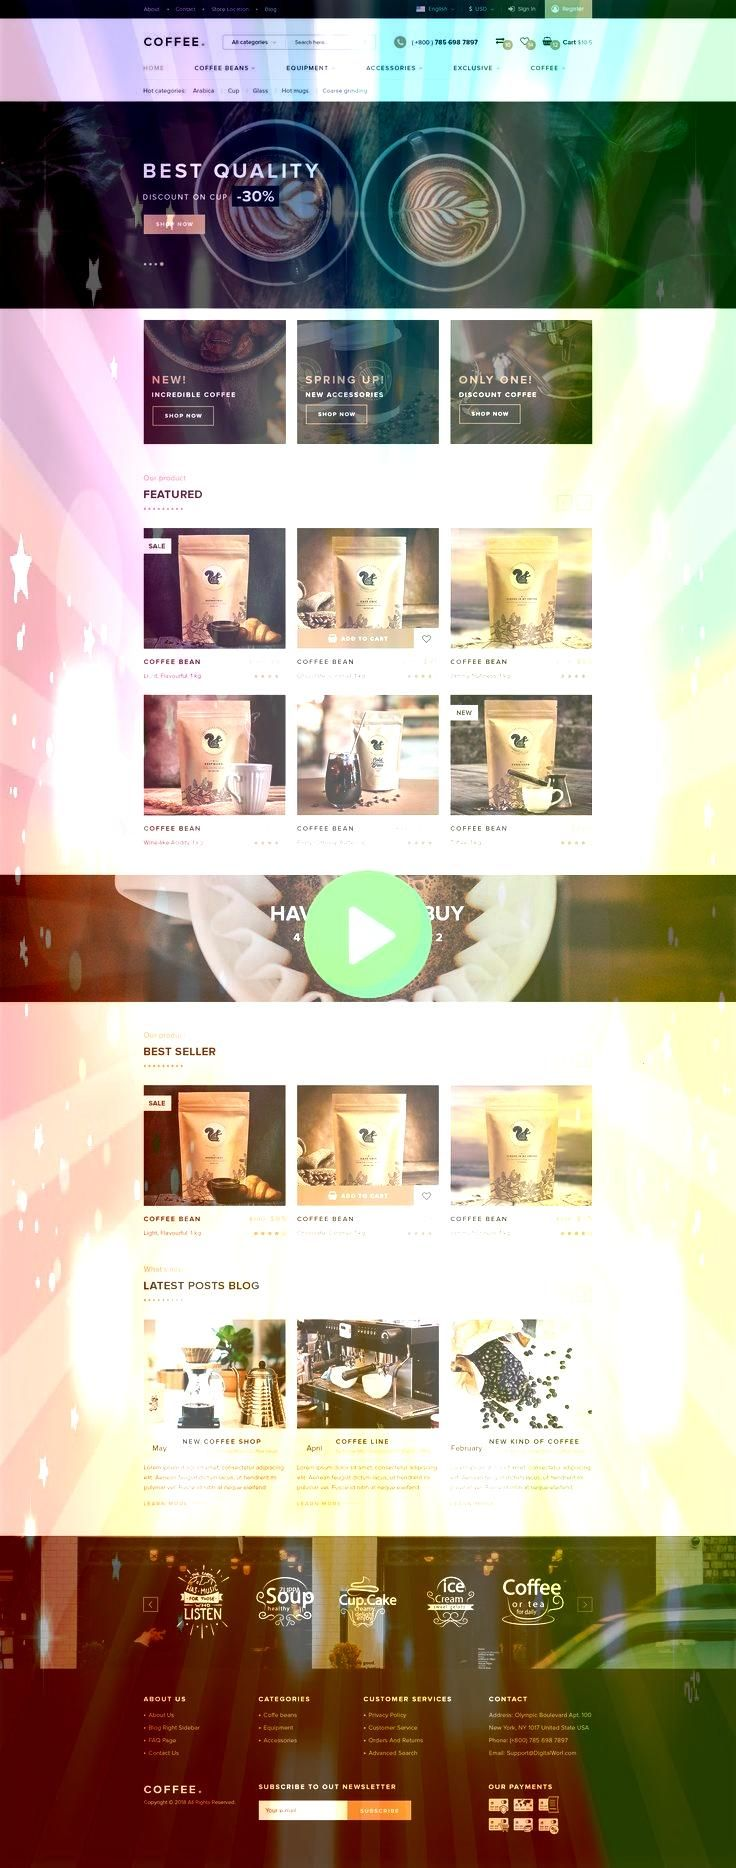 are glad to present you our second design project named Coffee Box Its a   Web Design We are glad to present you our second design project named Coffee Box Its a   Web De...